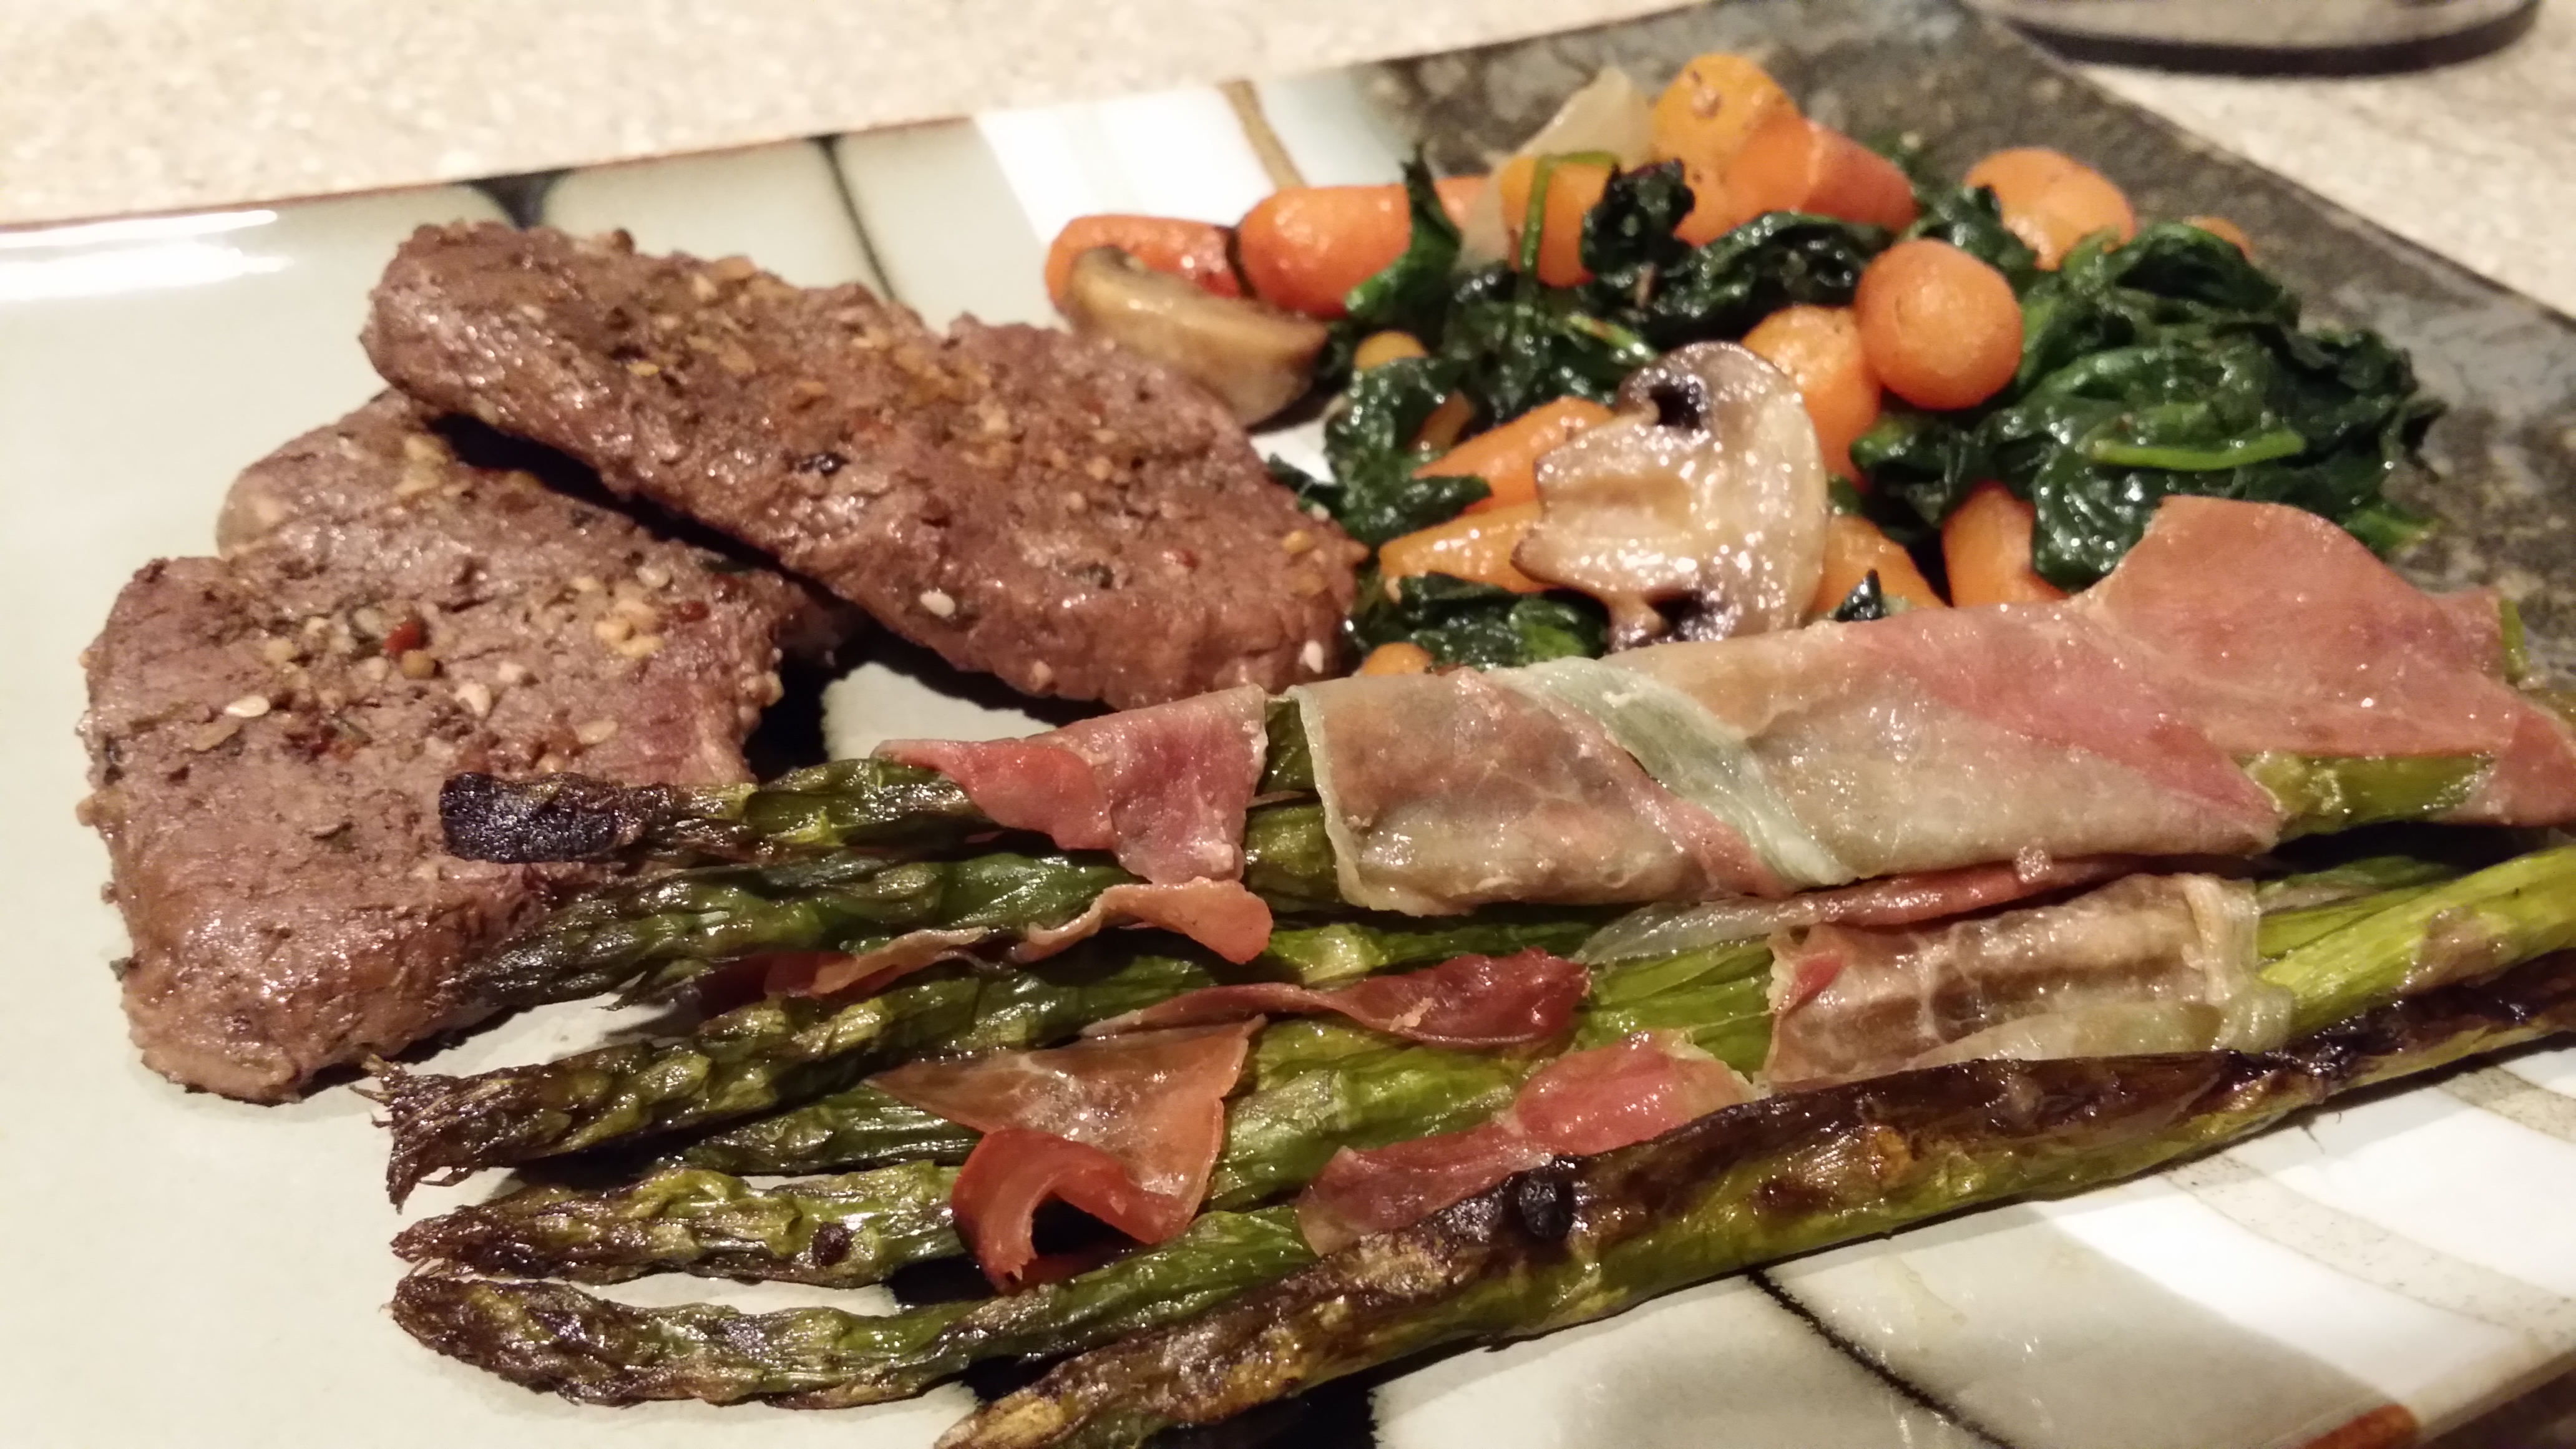 Venison Loin Chops with Roasted Carrots, Spinach & Mushrooms with Prosciutto Wrapped Asparagus